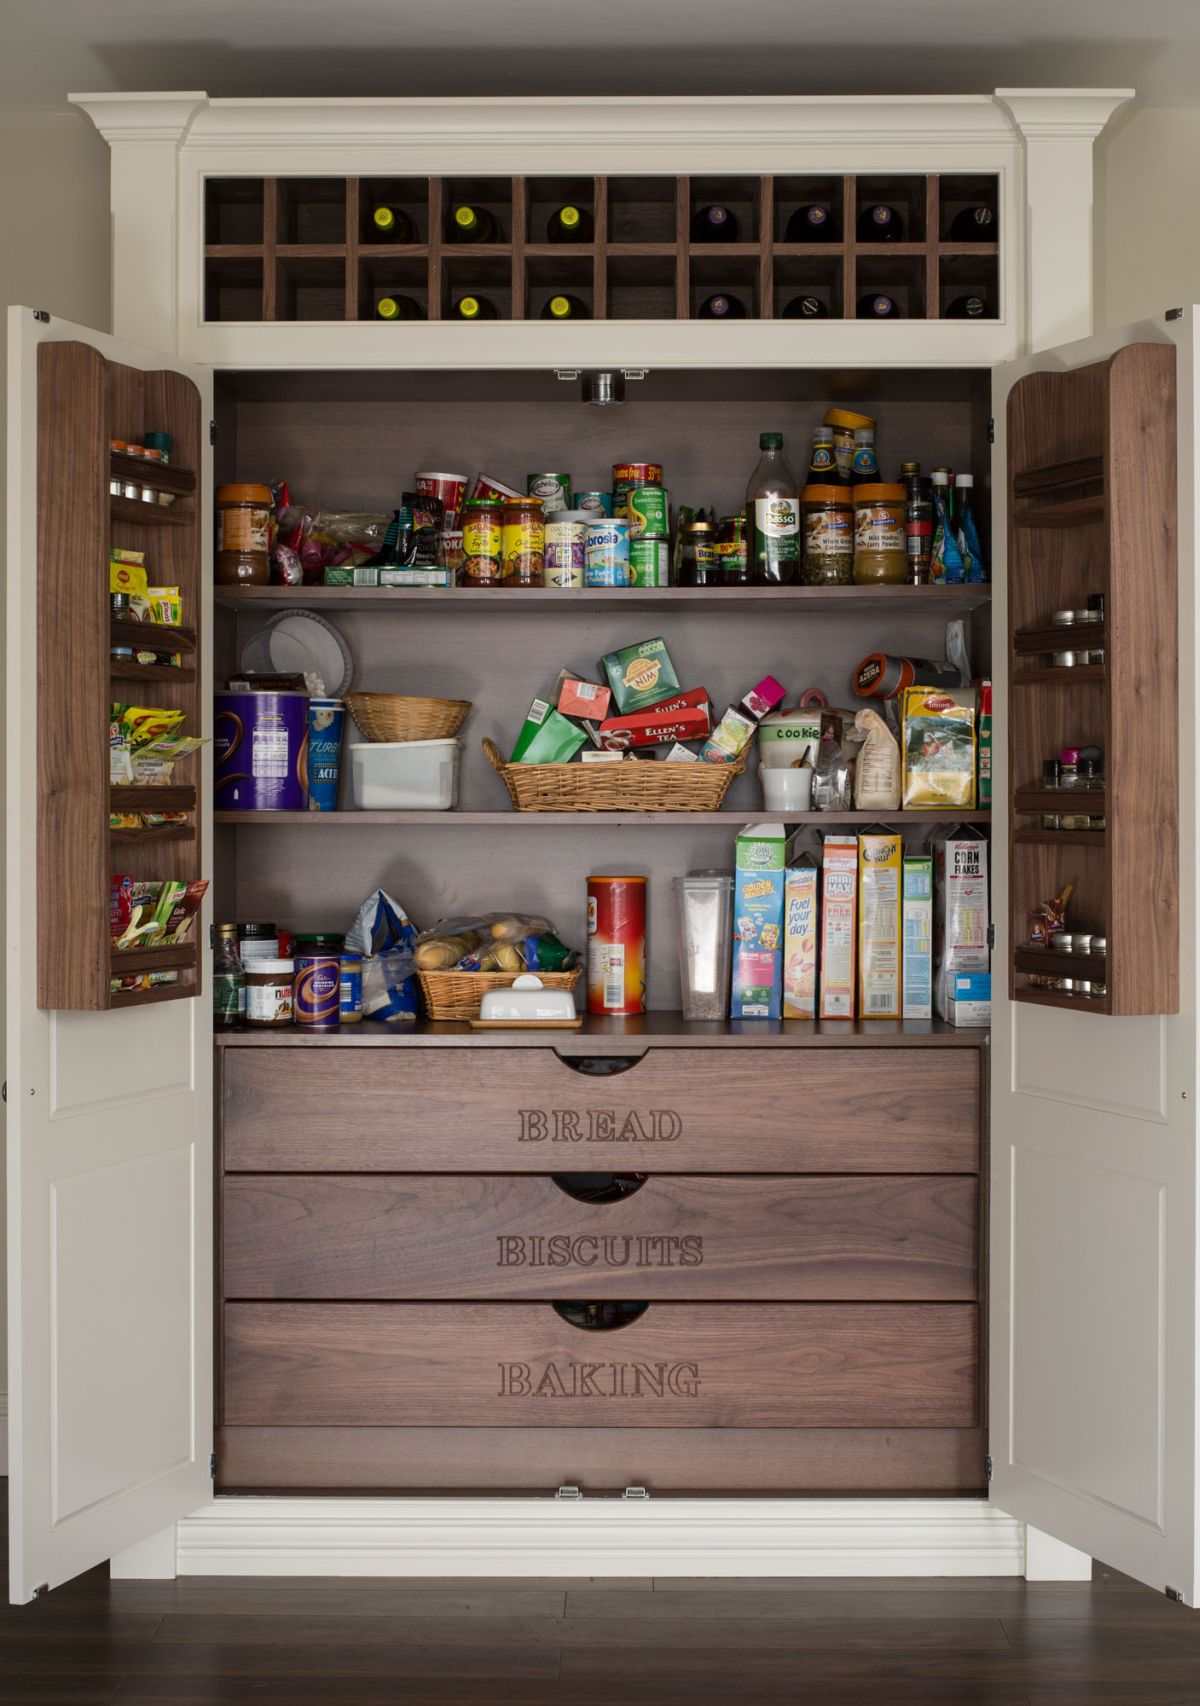 15 Kitchen Pantry Ideas With Form And Function on kitchen cabinet doors wholesale, kitchen islands wholesale, bathroom cabinets wholesale, storage cabinets wholesale, kitchen pantry furniture, kitchen chairs wholesale,